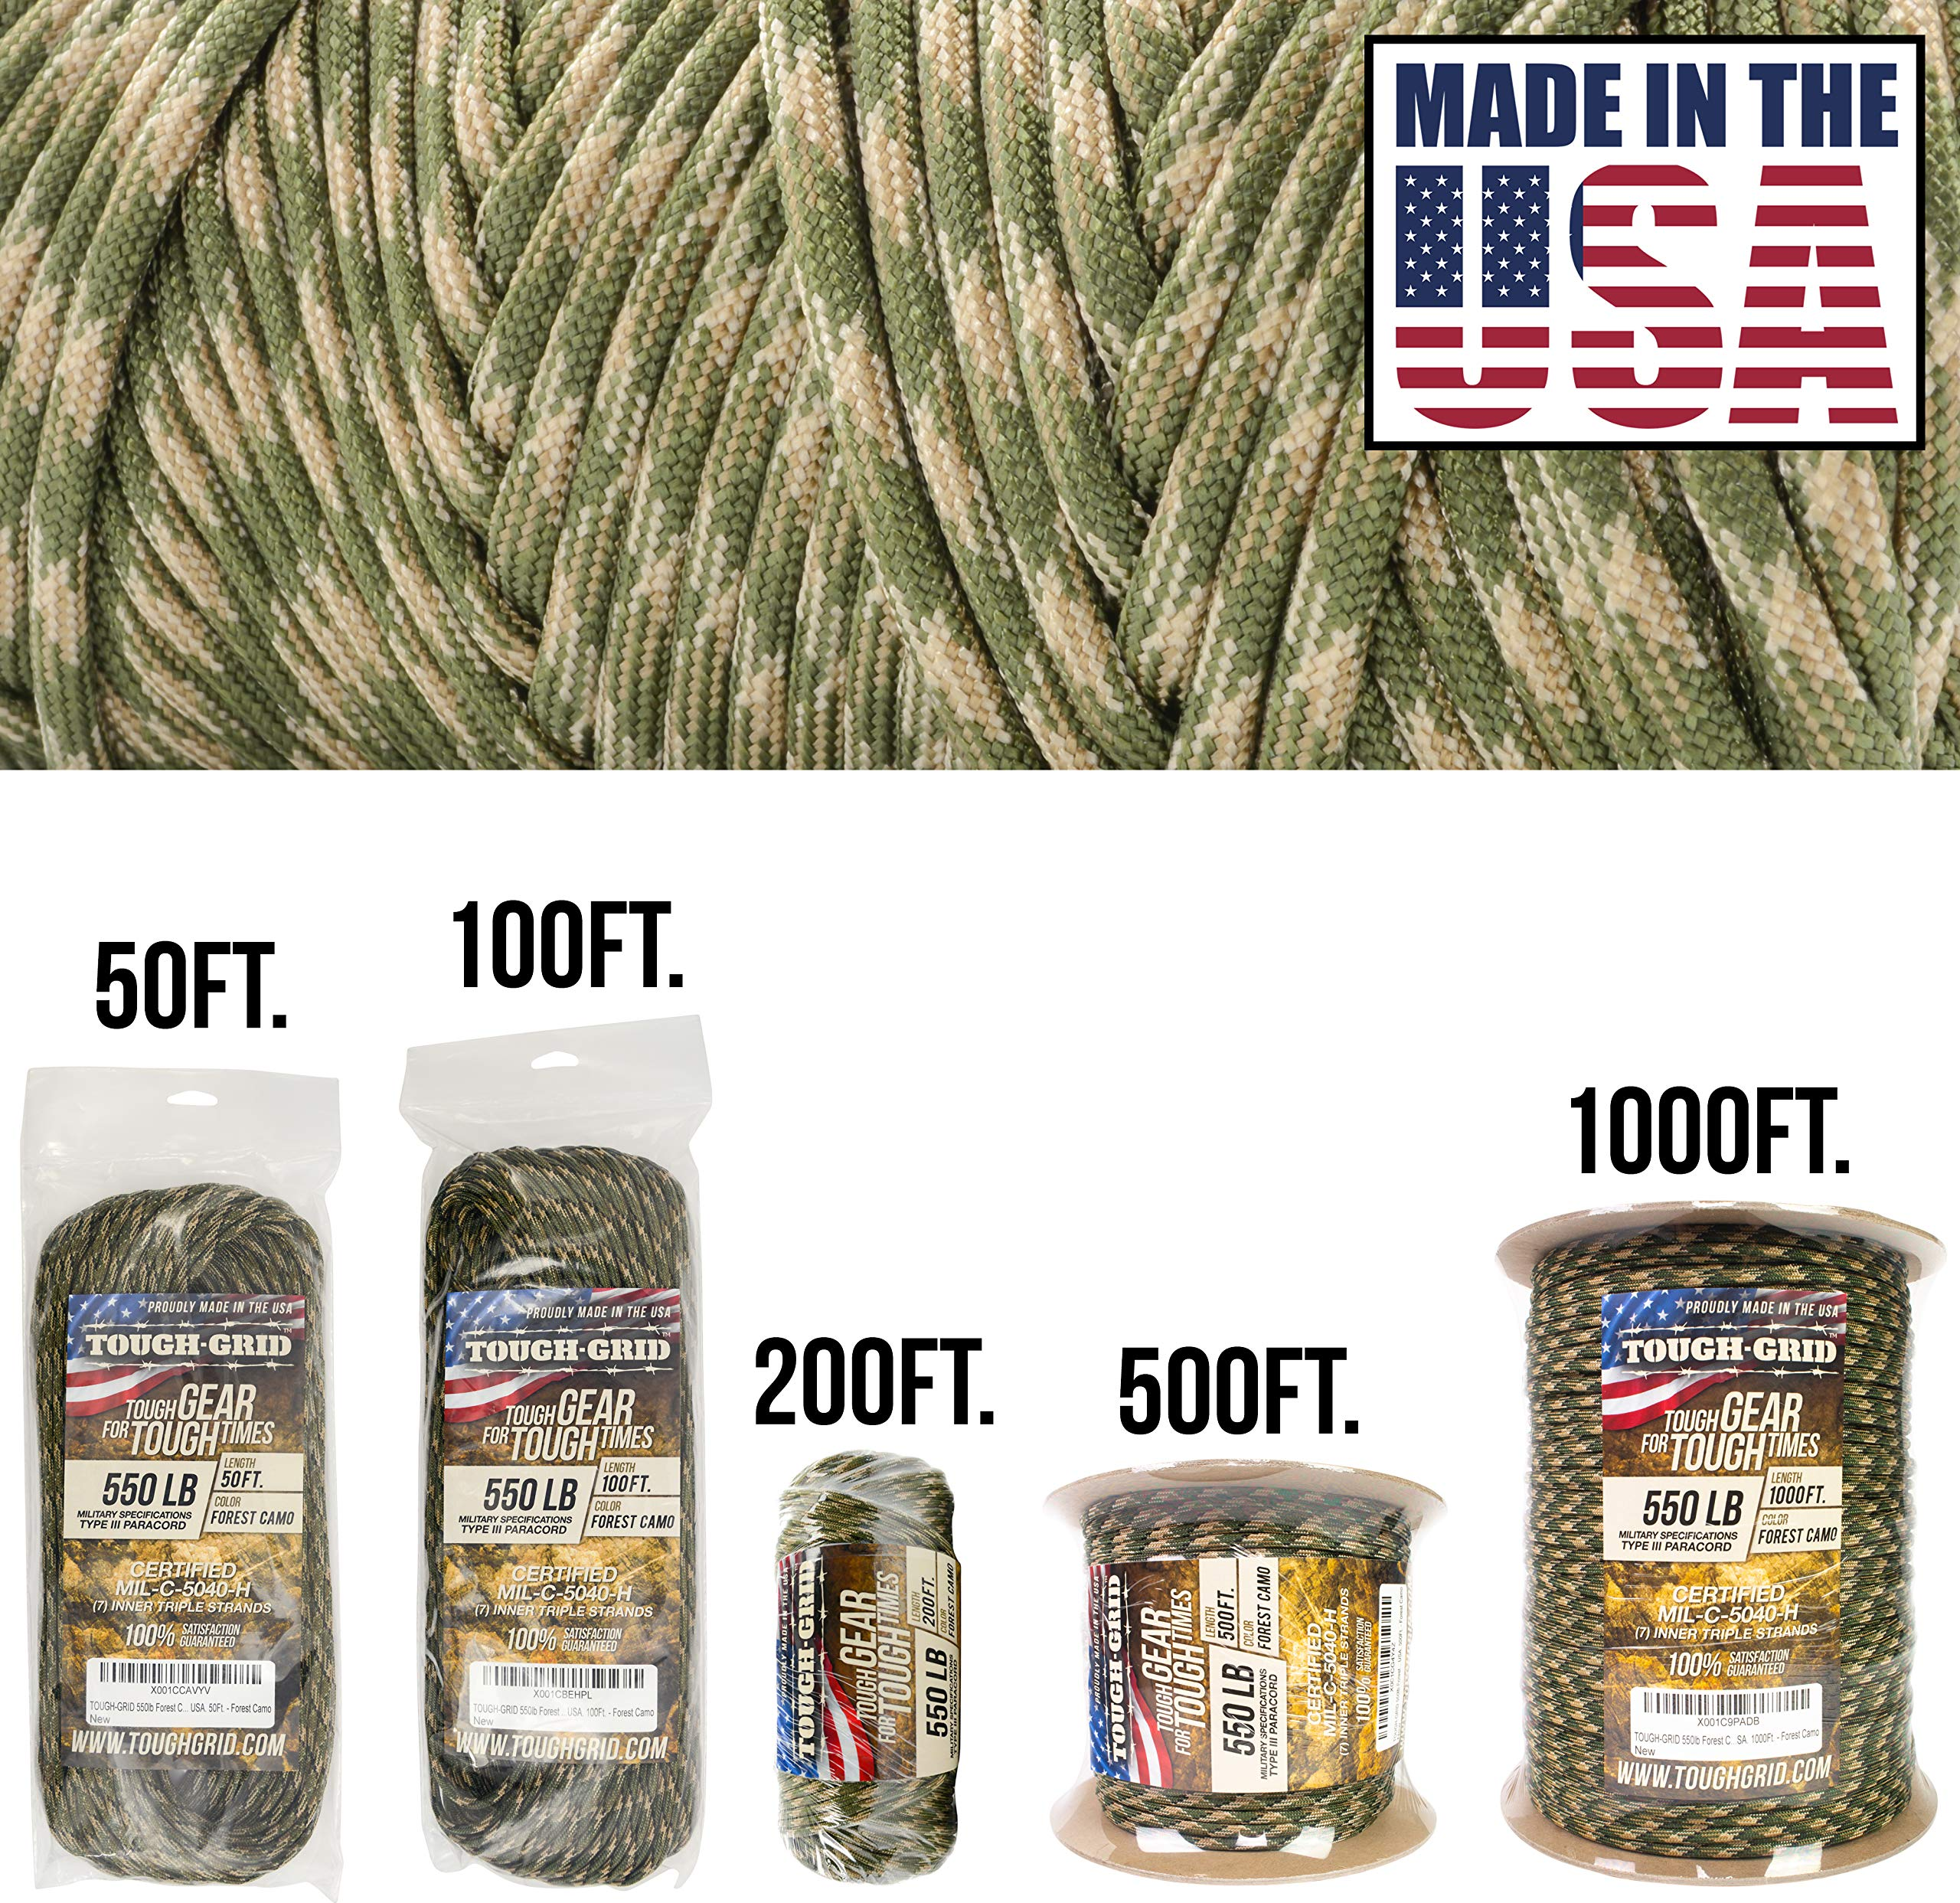 TOUGH-GRID 550lb Forest Camo Paracord/Parachute Cord - 100% Nylon Genuine Mil-Spec Type III Paracord Used by The US Military - (MIL-C-5040-H) - Made in The USA. 200Ft. - Forest Camo